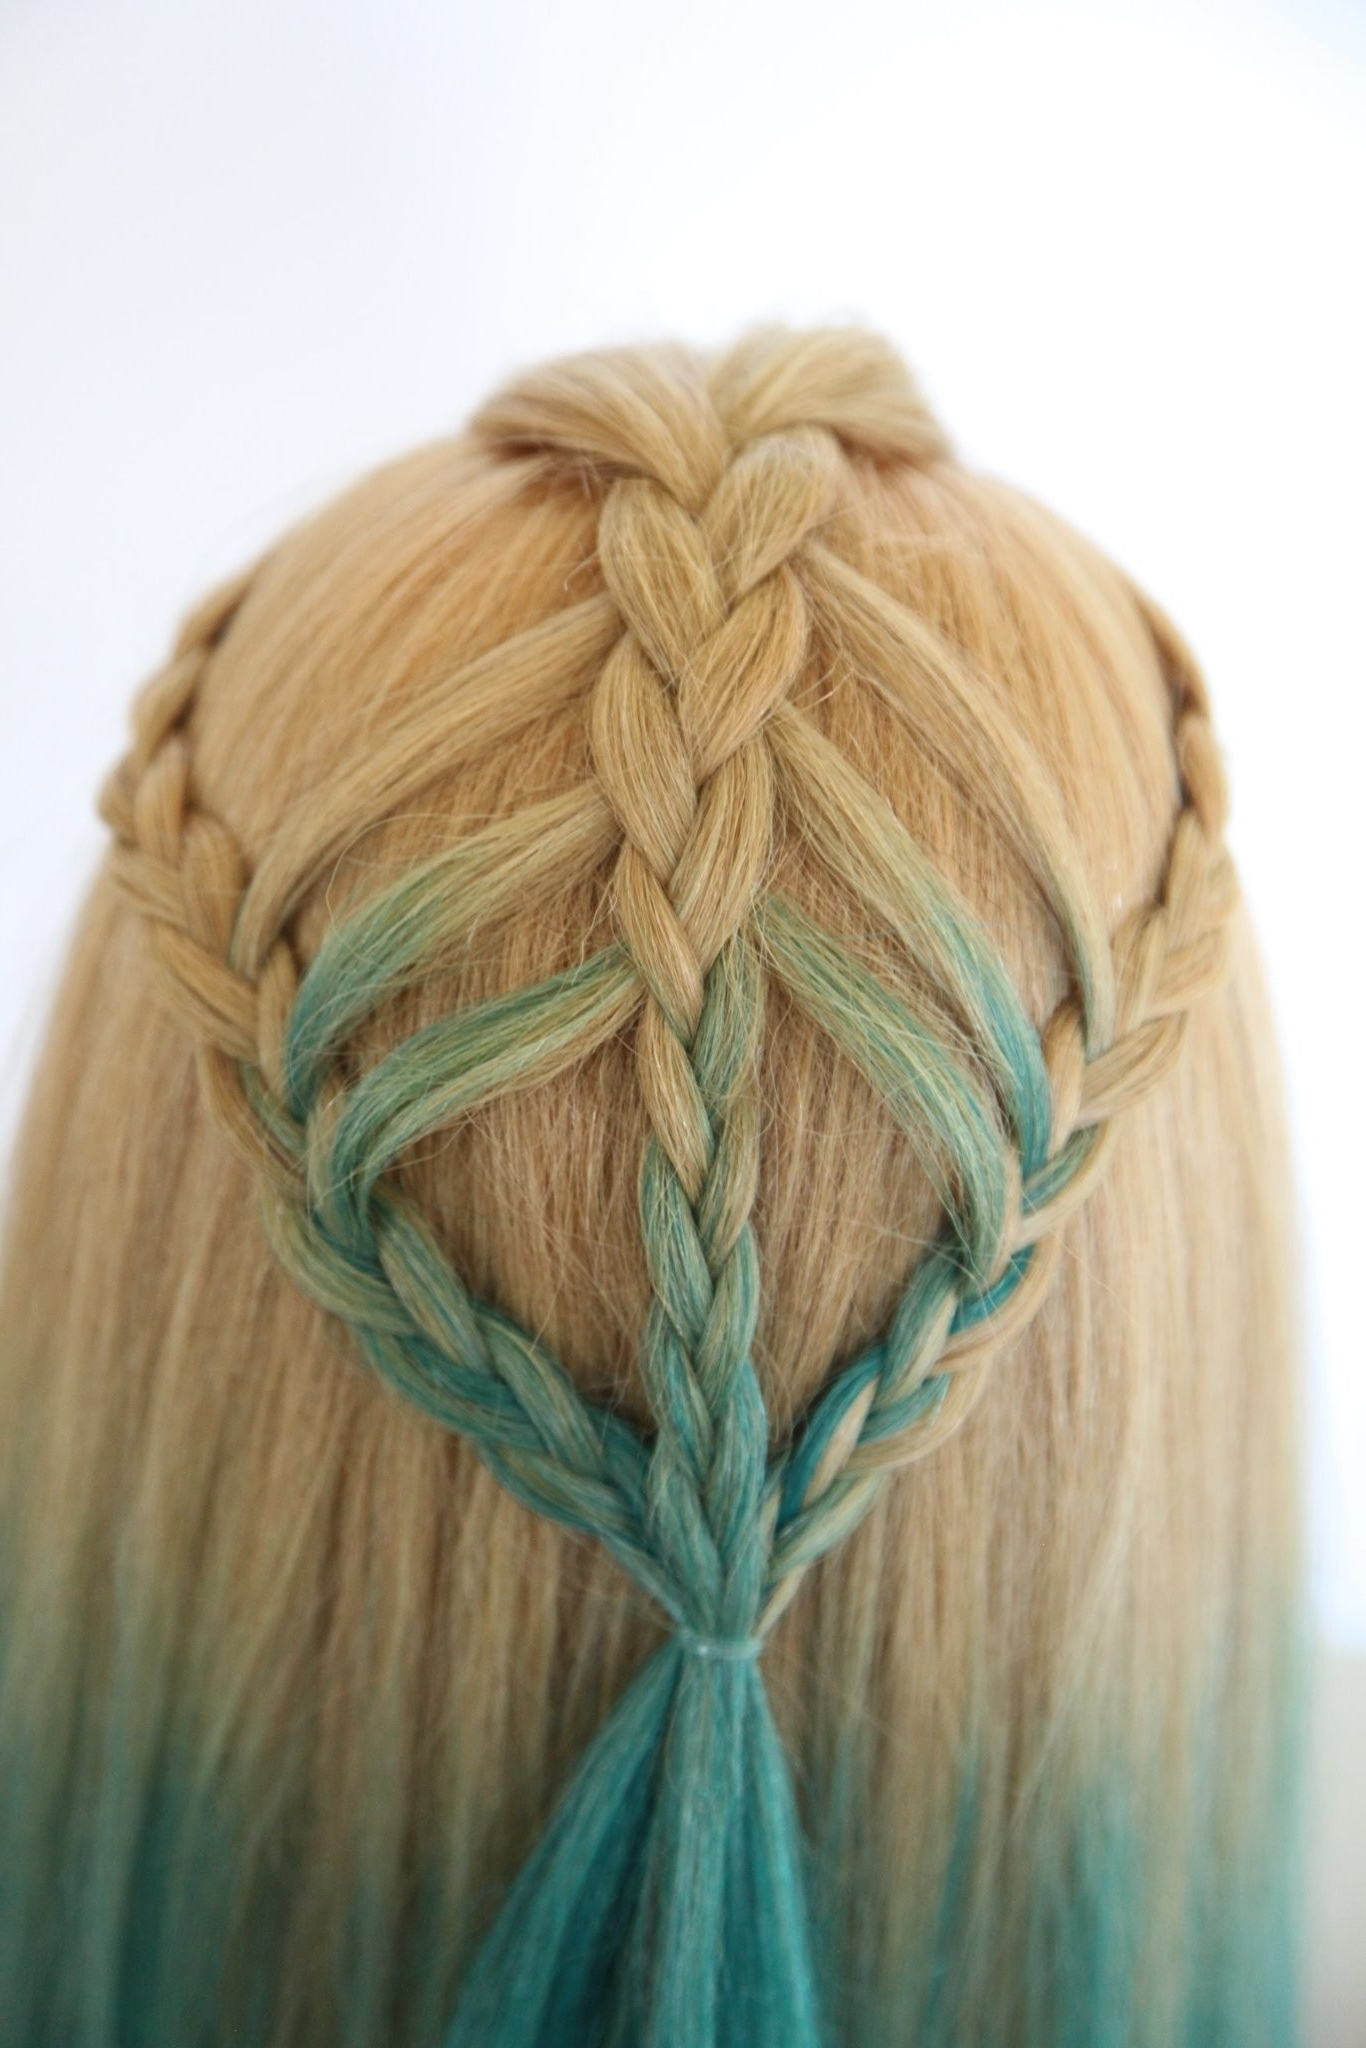 Half Up Arrow Braid · How To Style A Braid / Plait In Most Current Rope Half Braid Hairstyles (View 5 of 20)